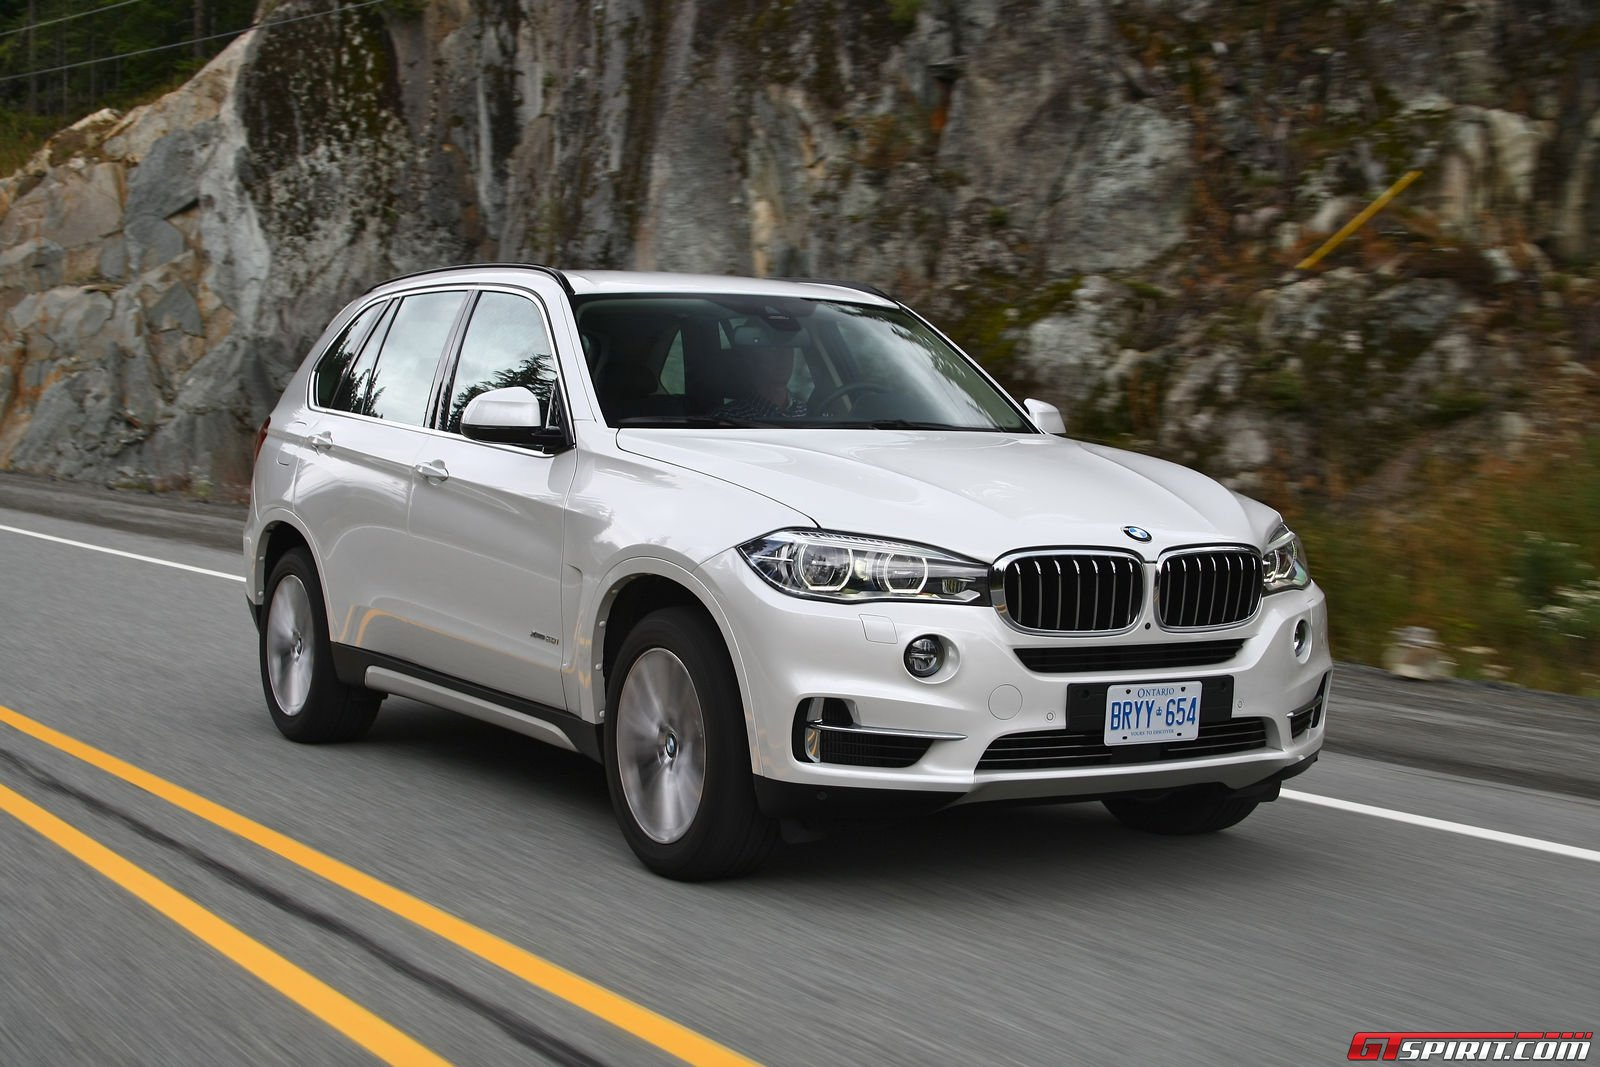 road test 2014 bmw x5 xdrive30d vs x5 xdrive50i gtspirit. Black Bedroom Furniture Sets. Home Design Ideas